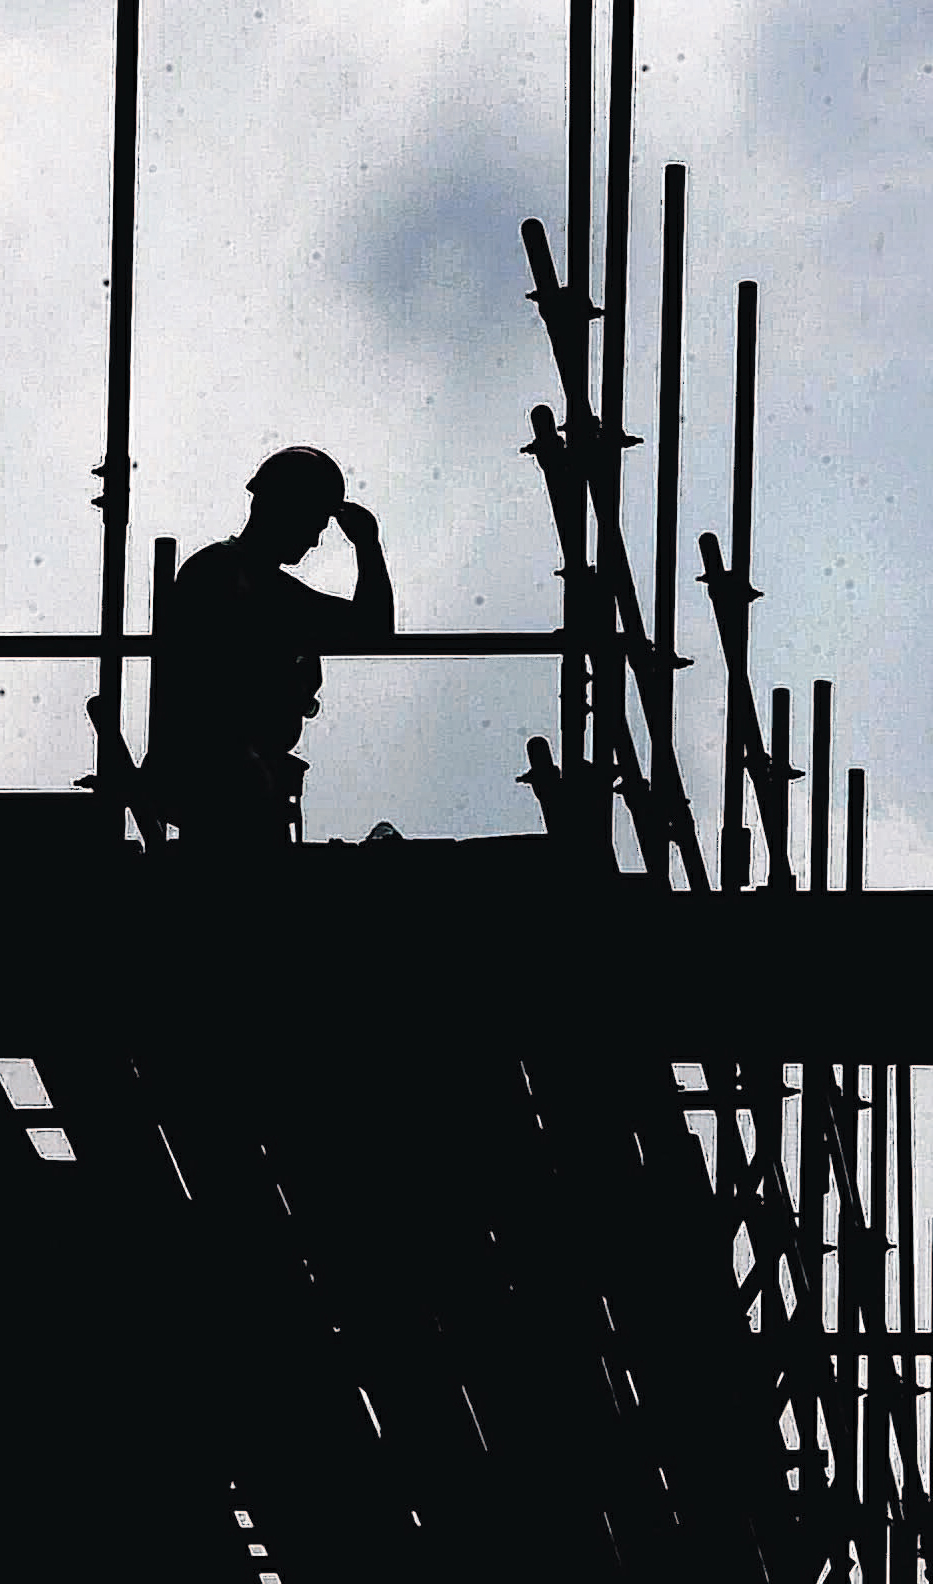 Unsafe practices at Worcestershire building sites being targeted